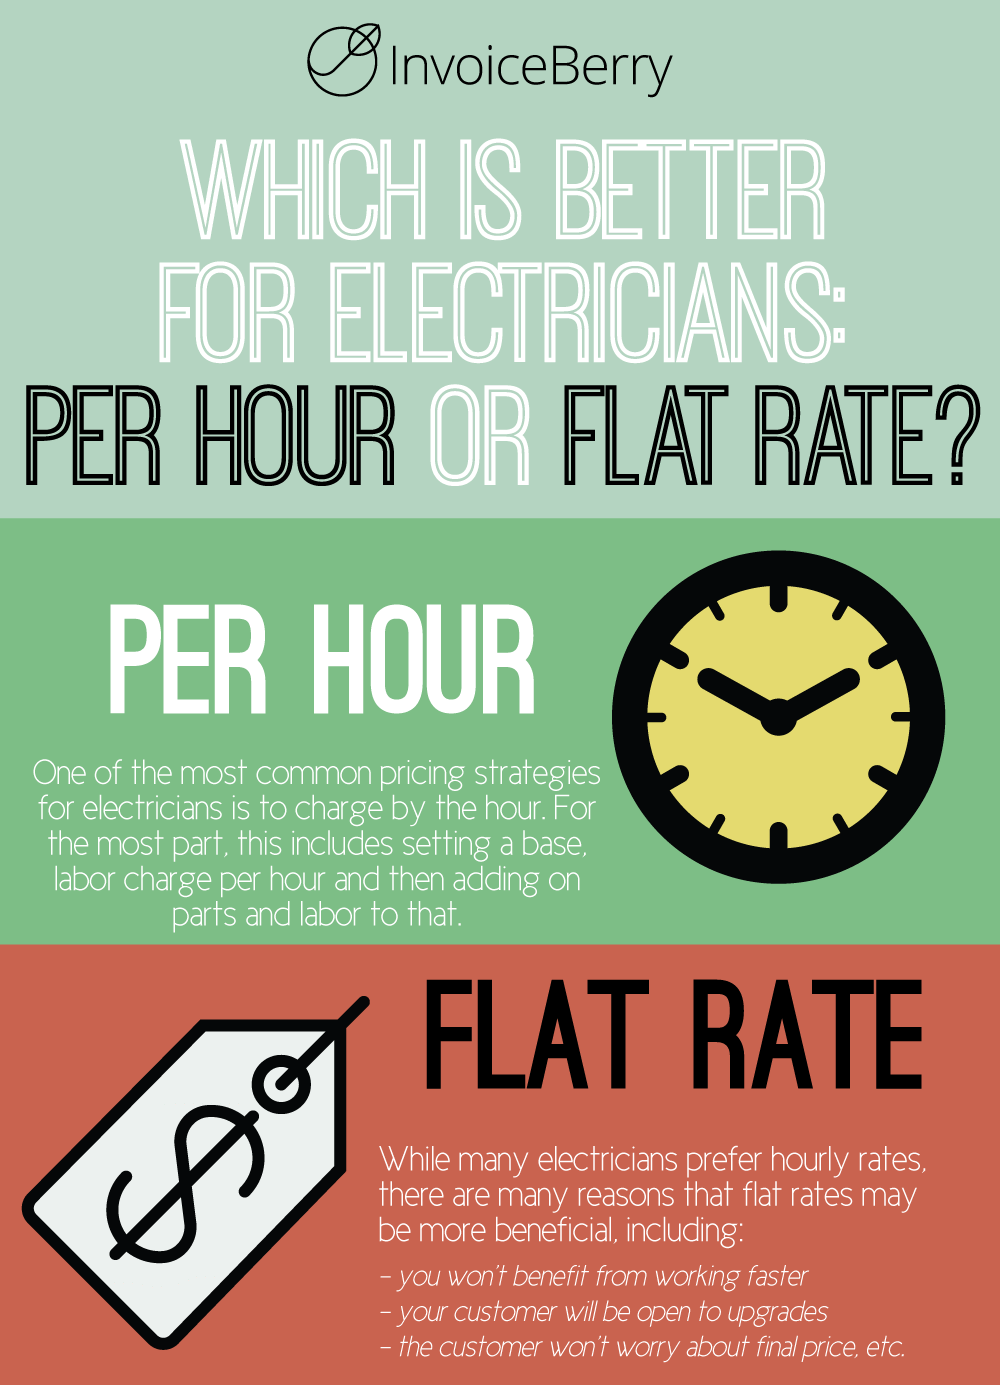 Find out if you should charge per hour or a flat rate for your electrician business